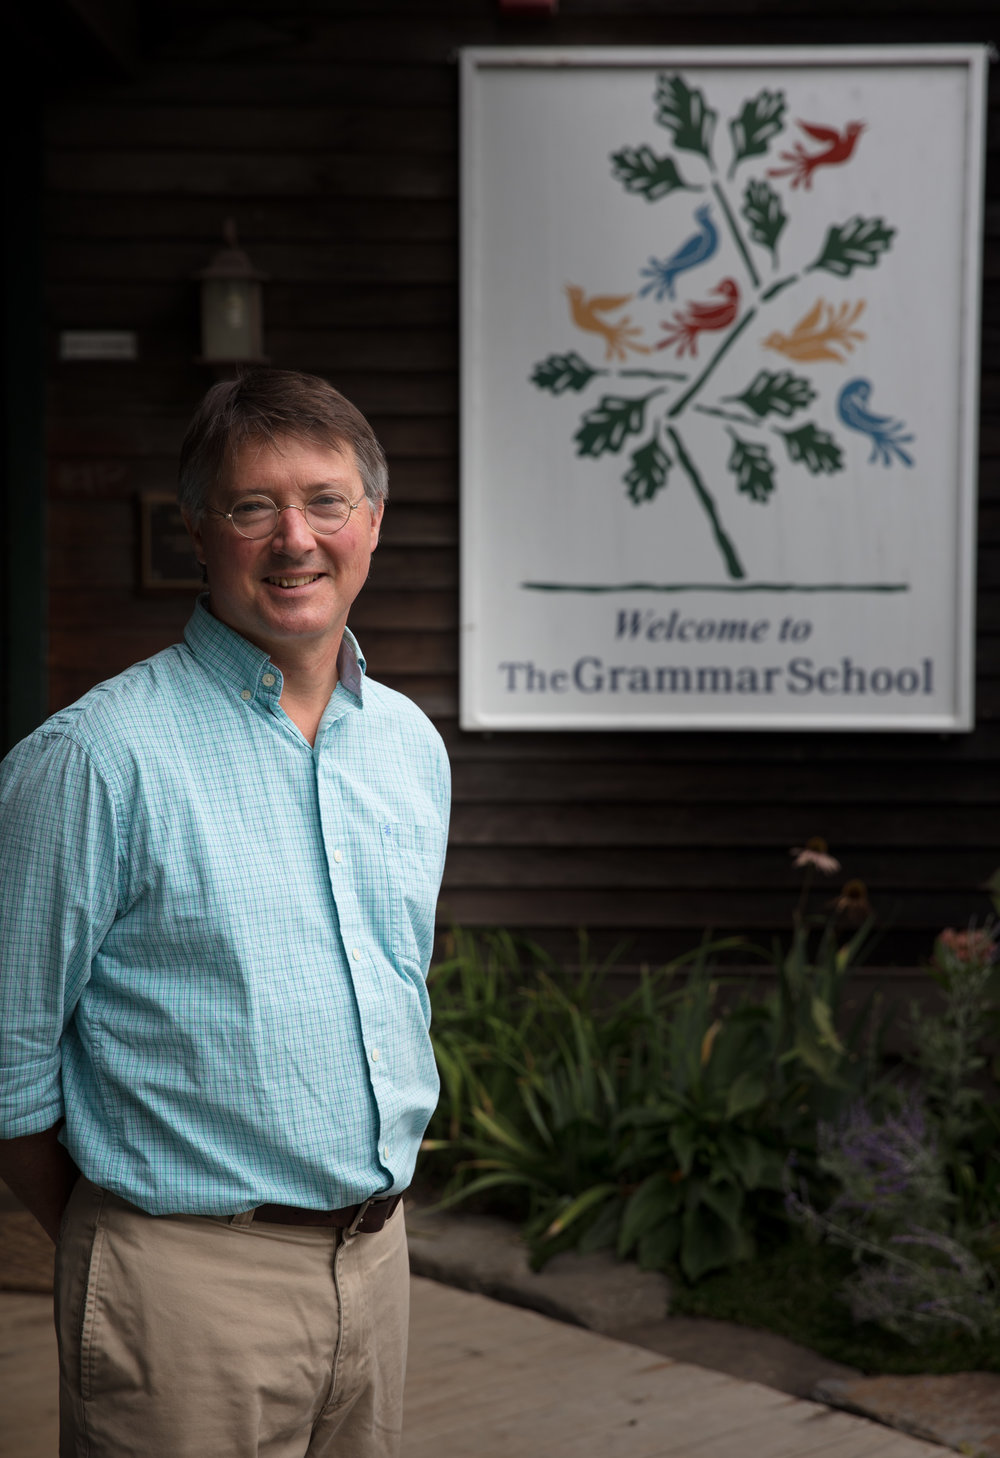 Nick Perry, Head of School